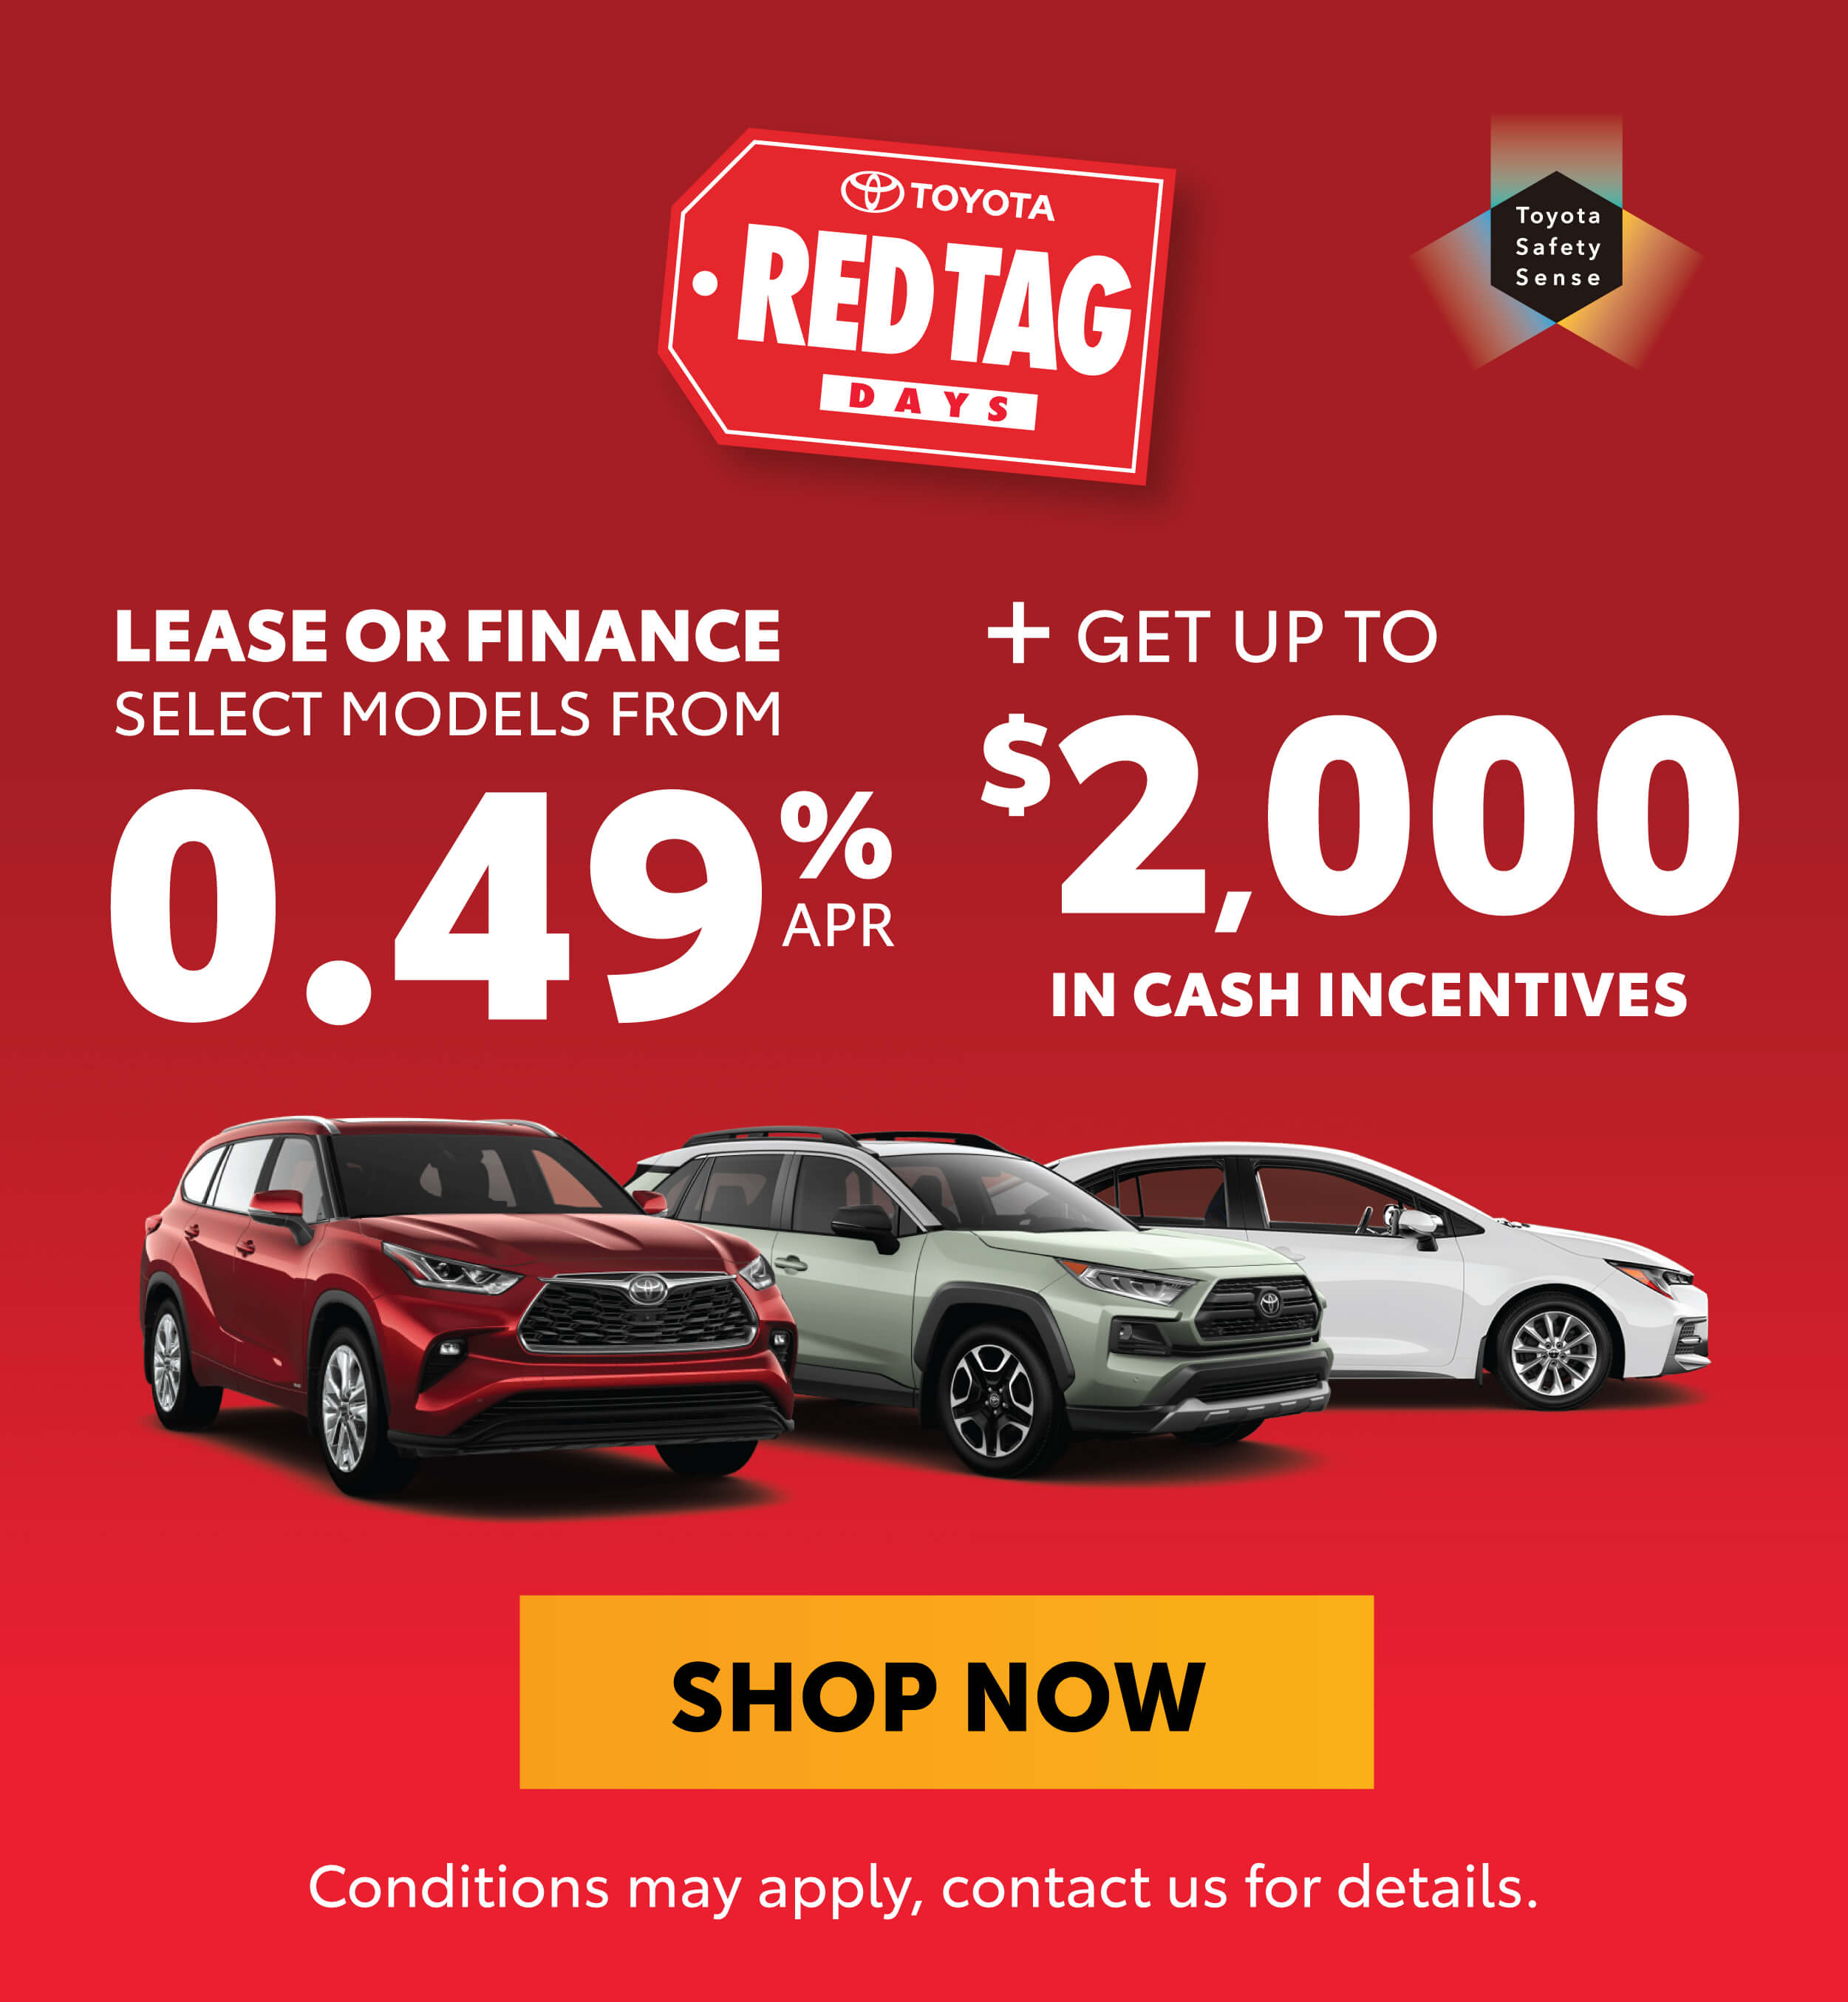 Red Tag Days Promotions Georgetown Toyota